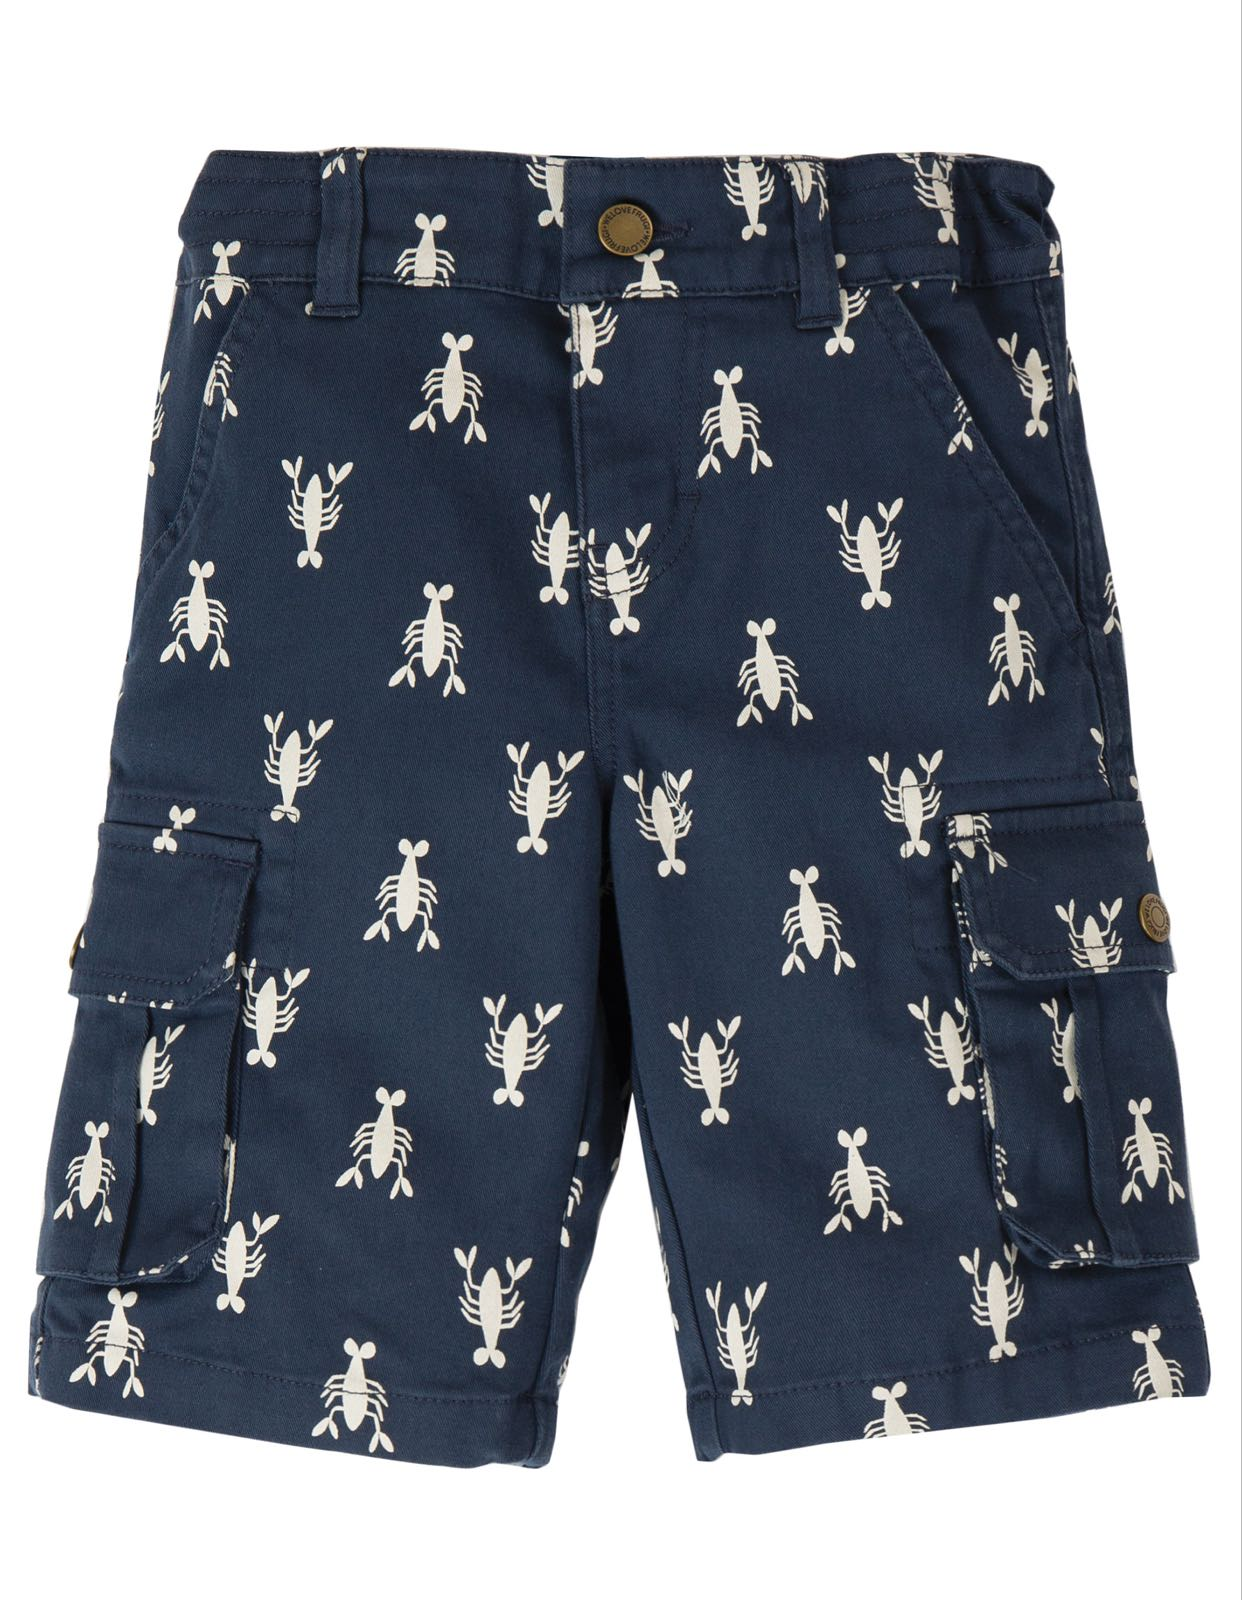 Frugi Explorer Shorts, Indigo Lobster